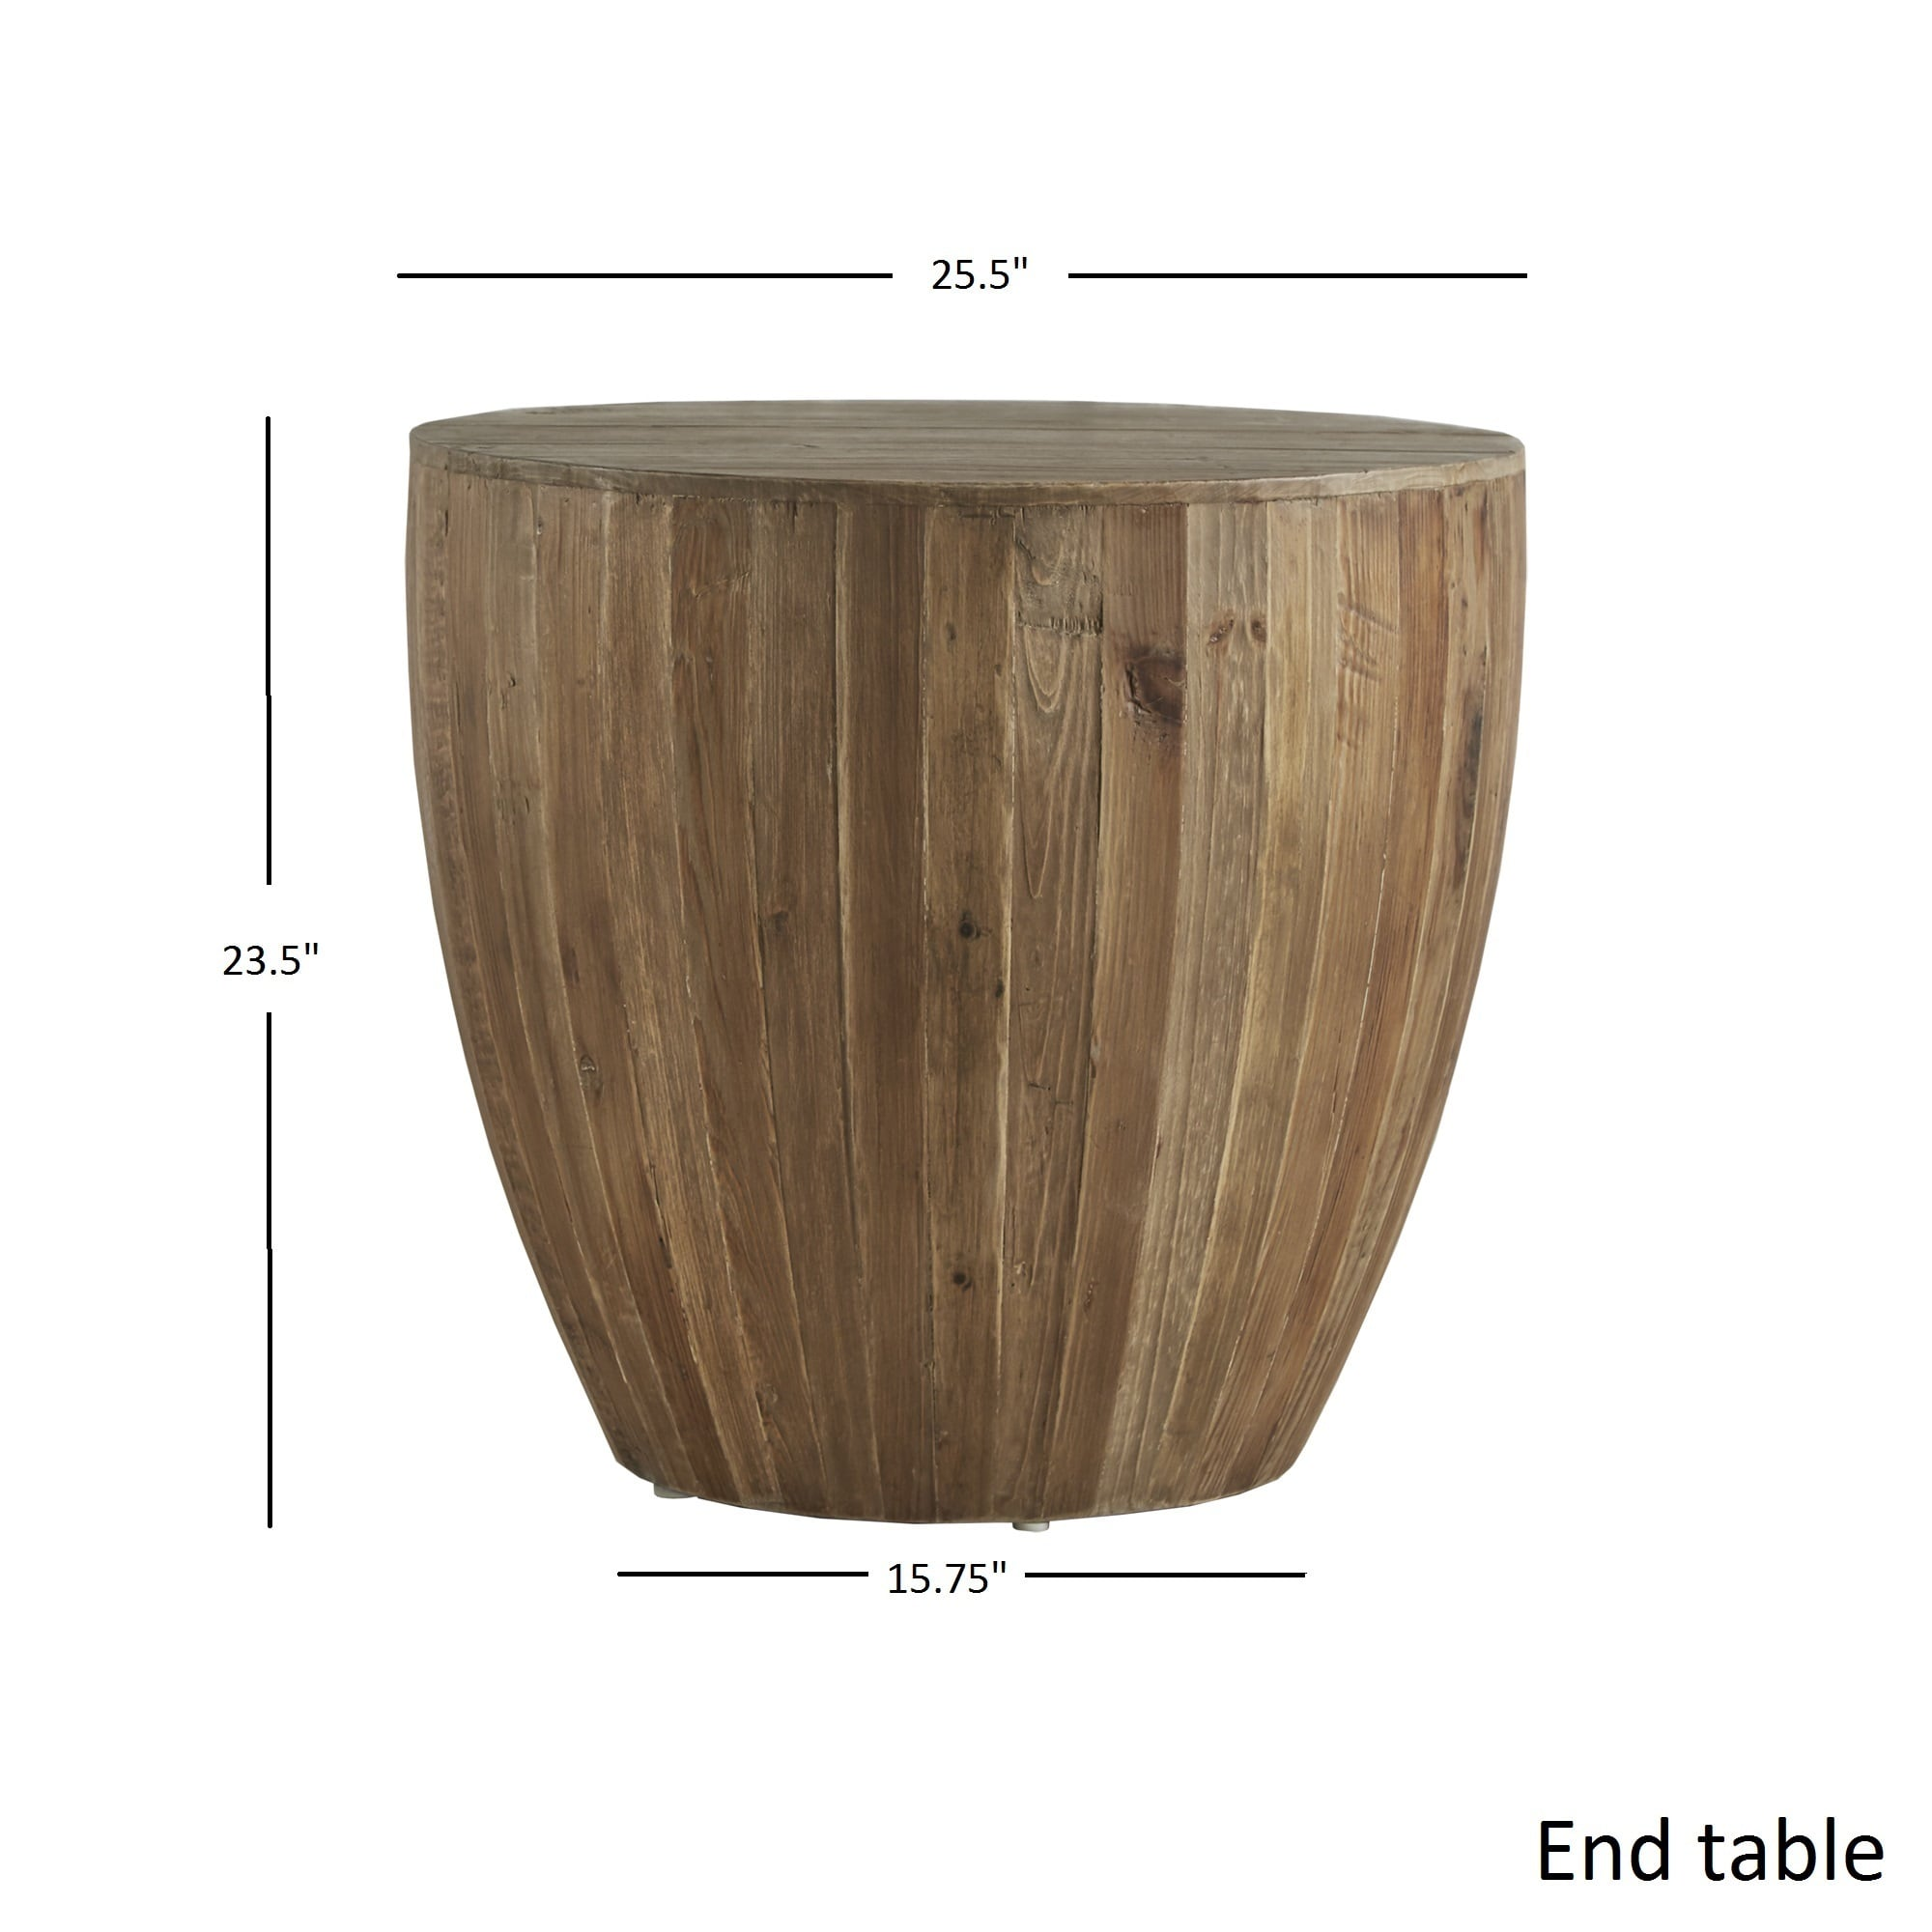 Hatteras Drum Reclaimed Woodblock Barrel Side Table By Inspire Q Free Shipping Today 18916769